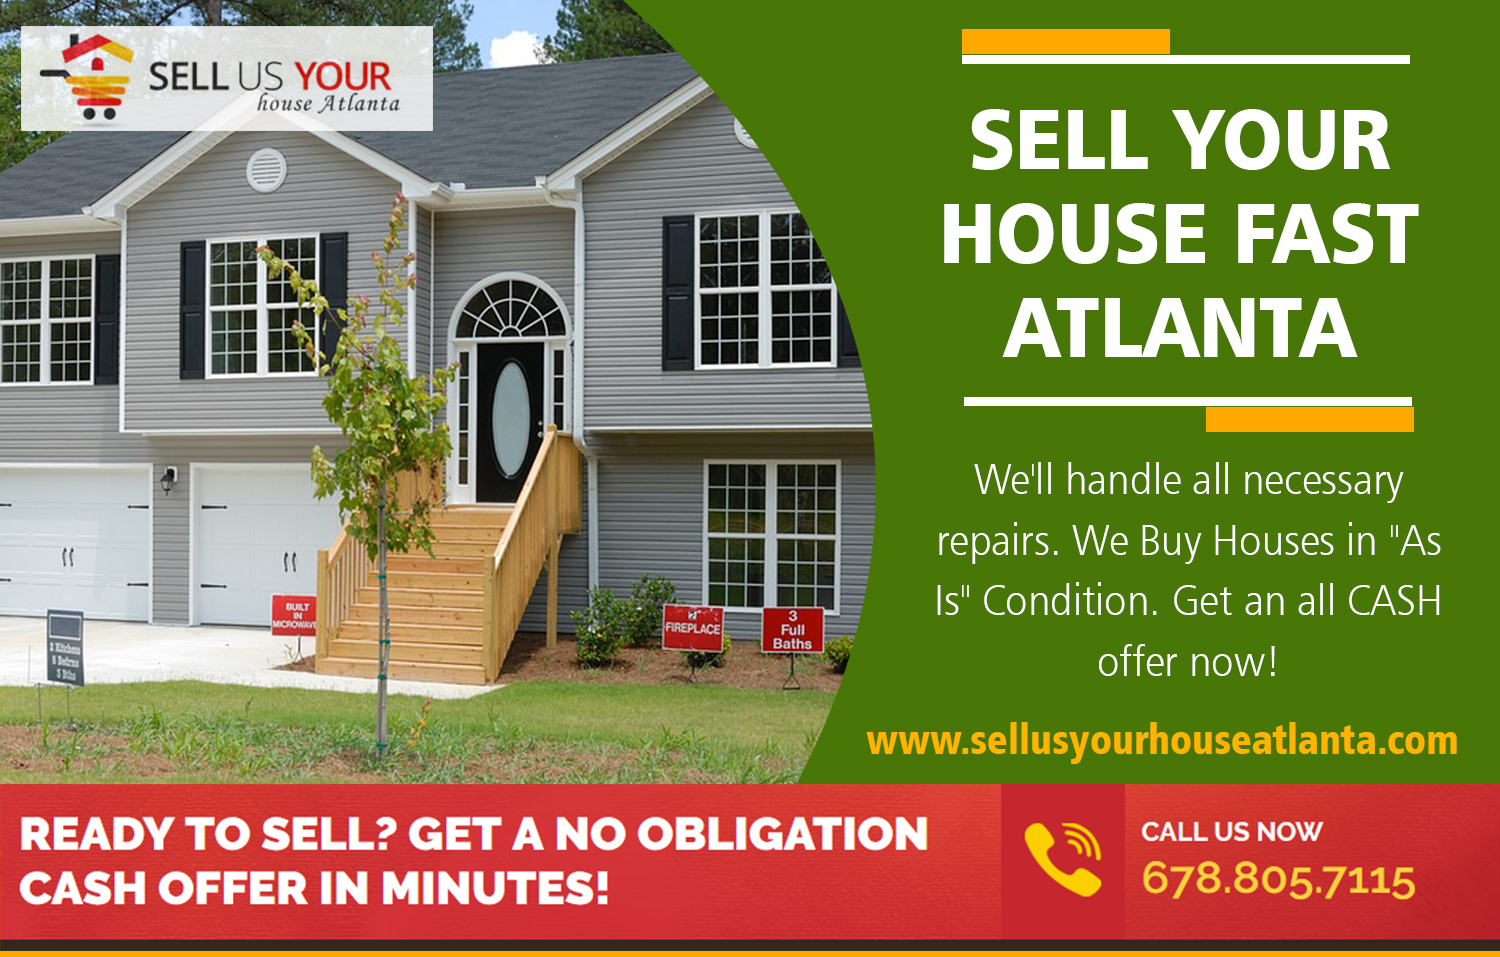 Sell Your House Fast Atlanta